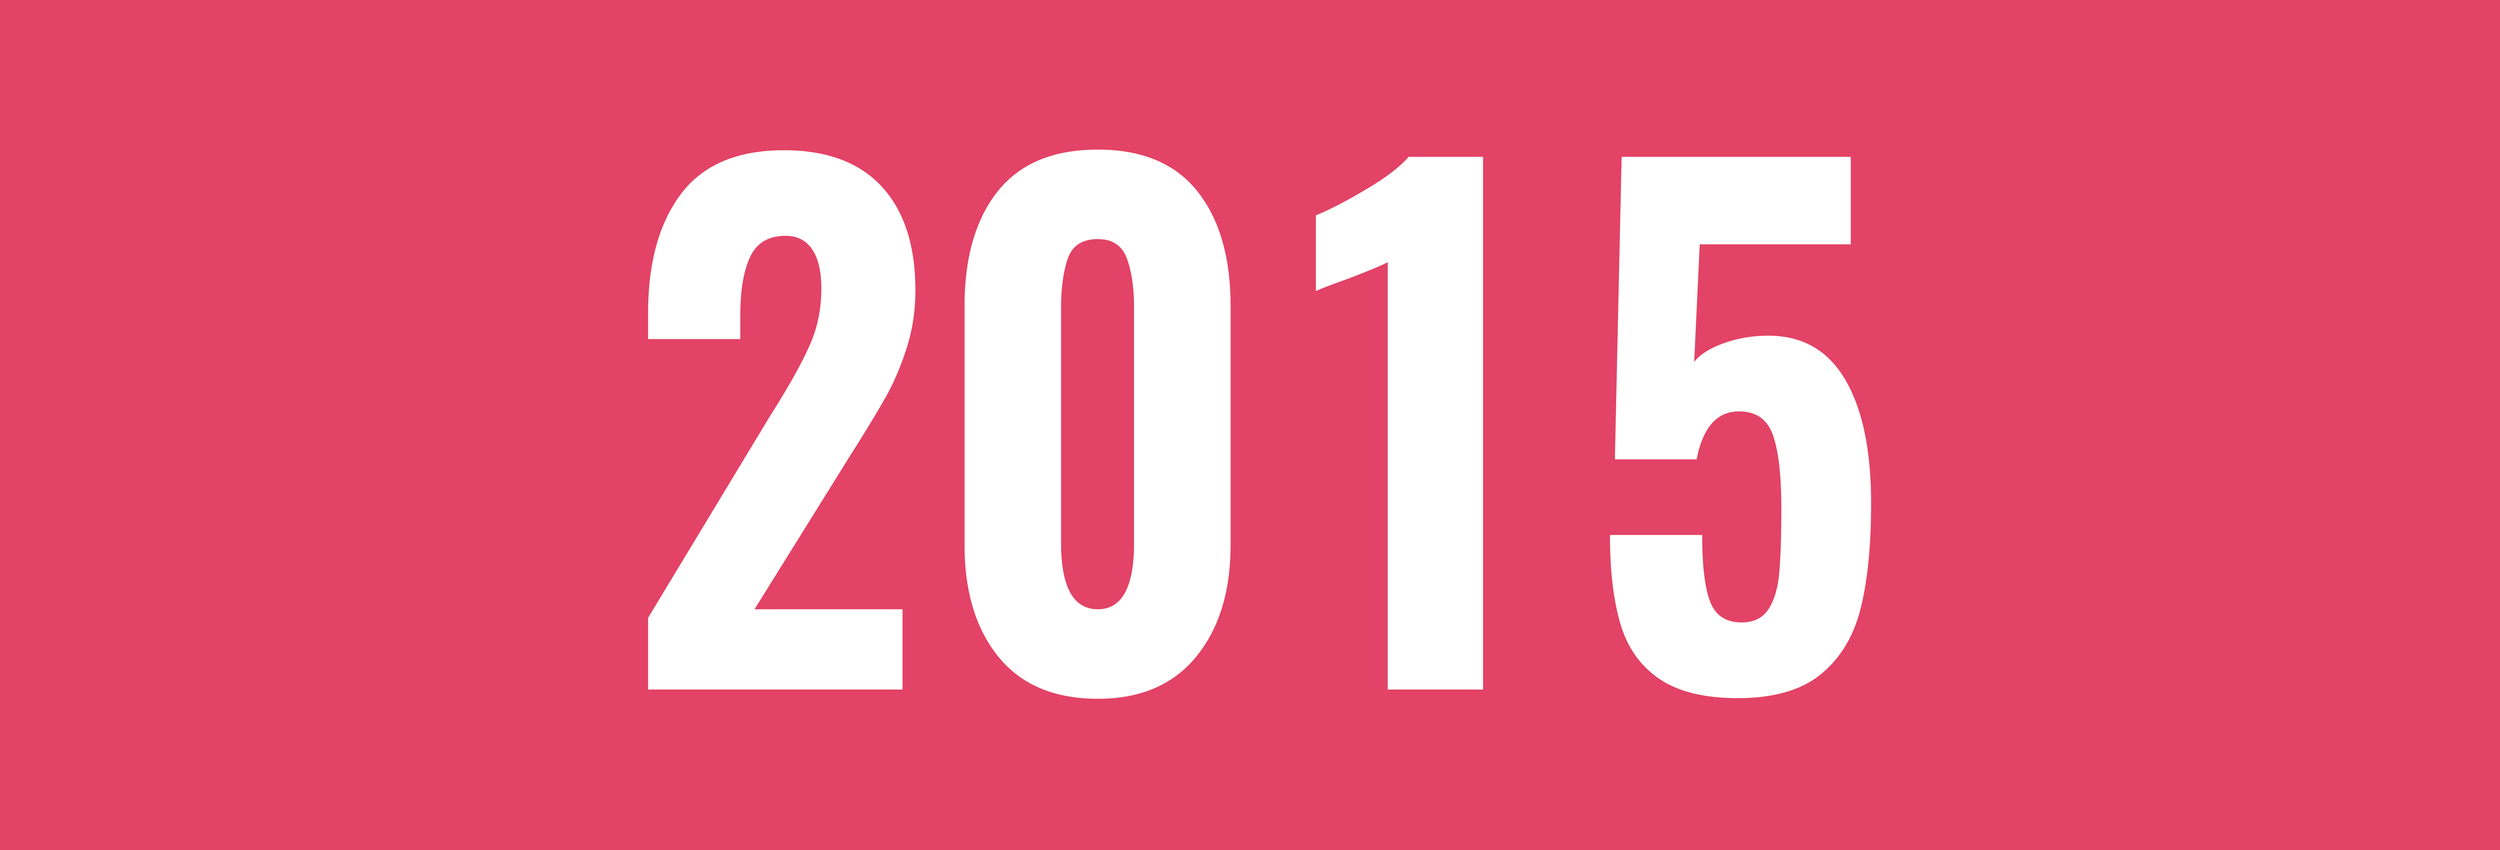 2015 Banner-01.png